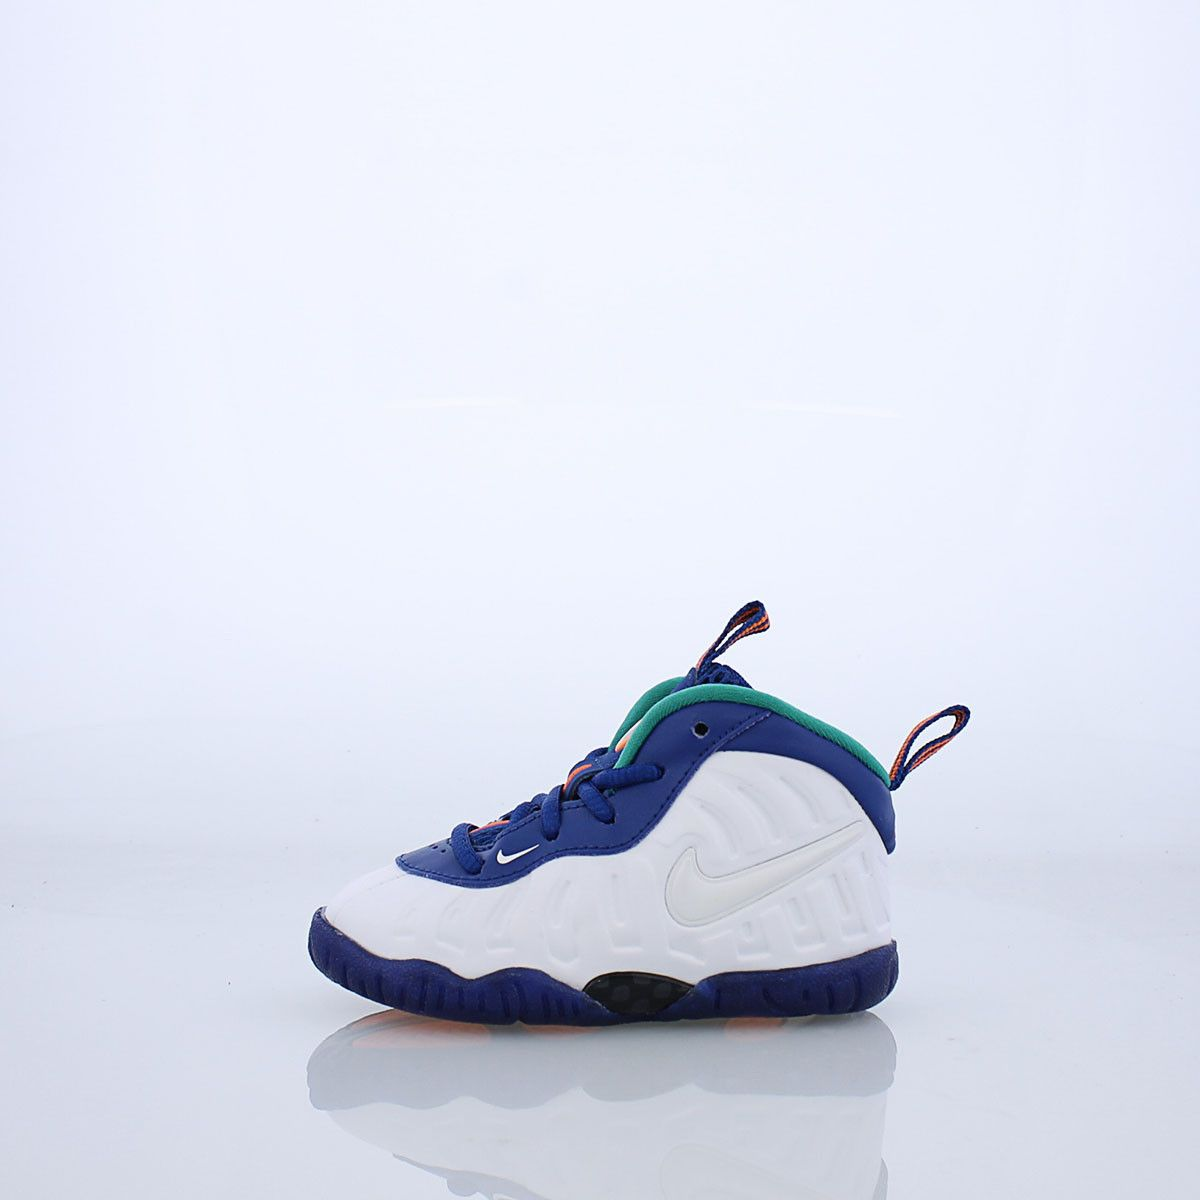 8d6b4967dfe1 The Nike Little Posite One Little Kids  Shoe provides plush comfort with low-profile  cushioning and a stand-out molded upper.